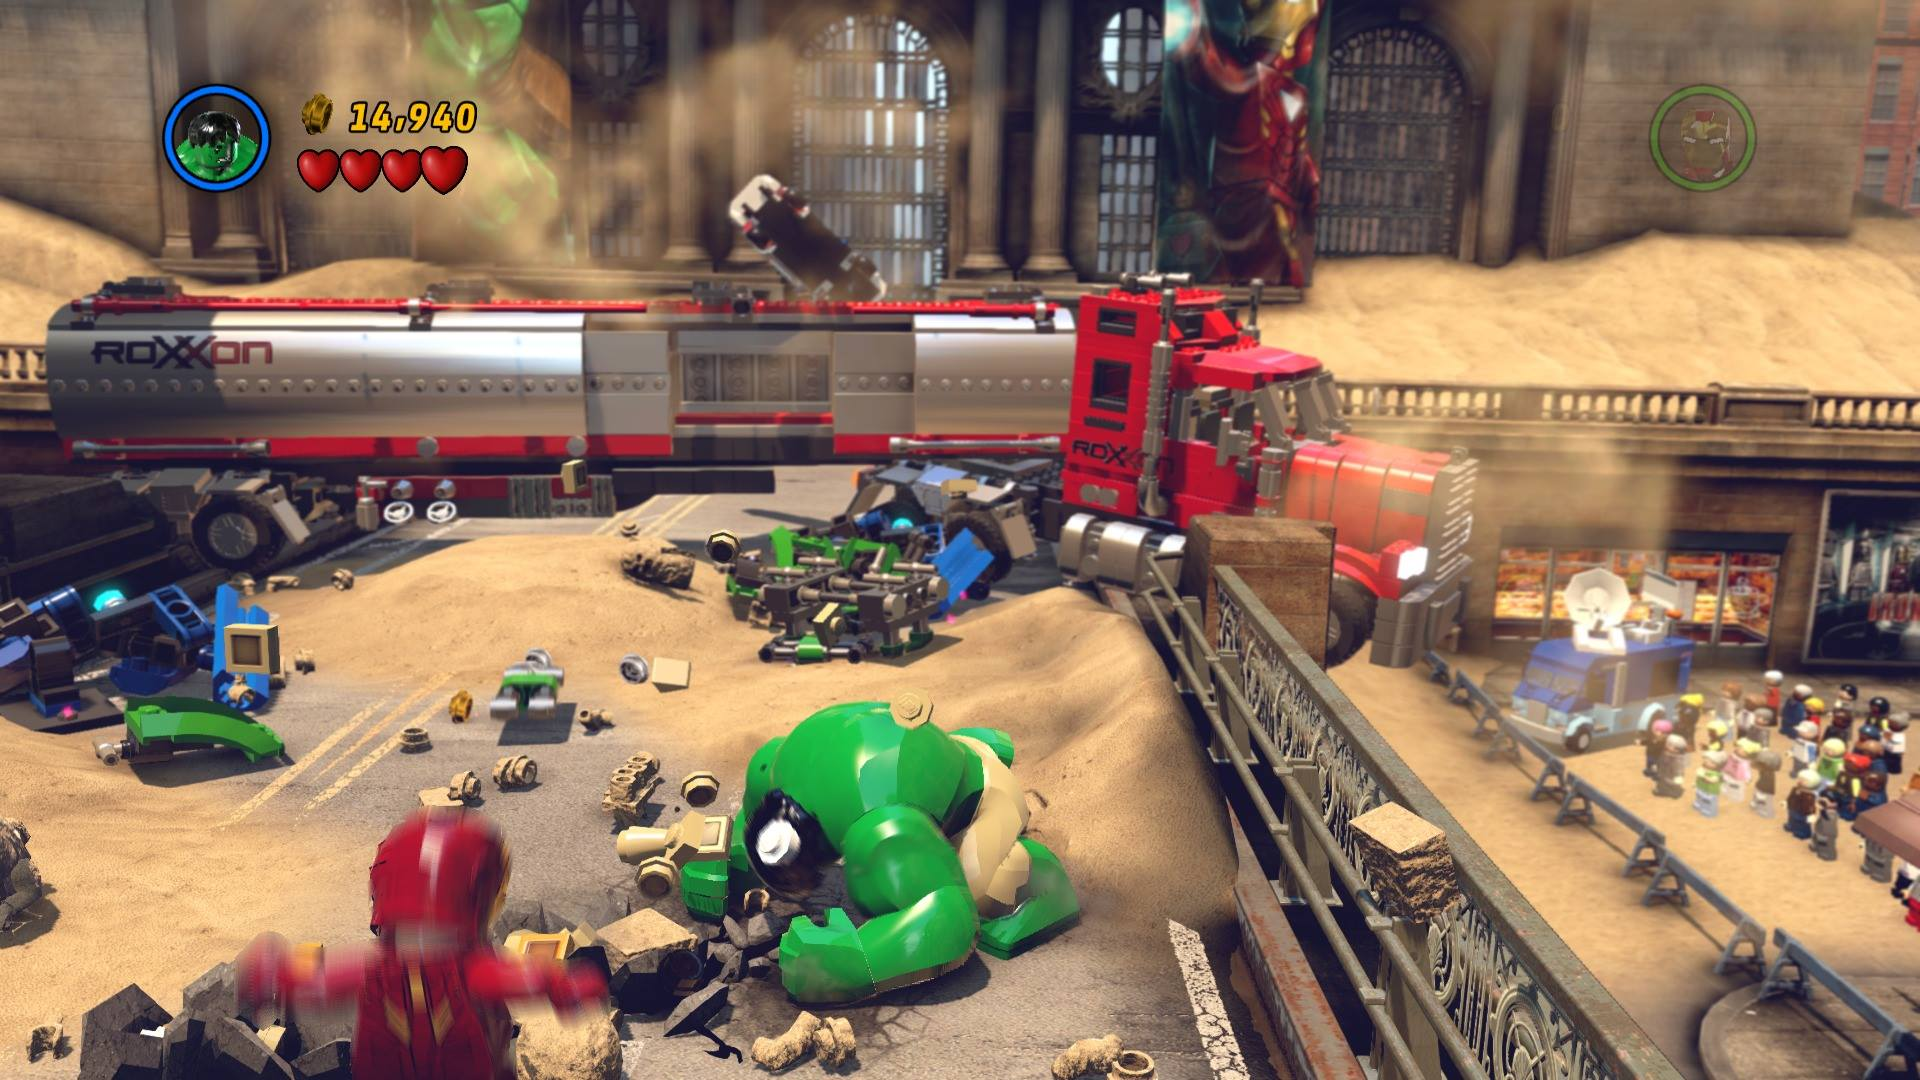 Screenshot for the game LEGO Marvel Super Heroes (2013) download torrent RePack